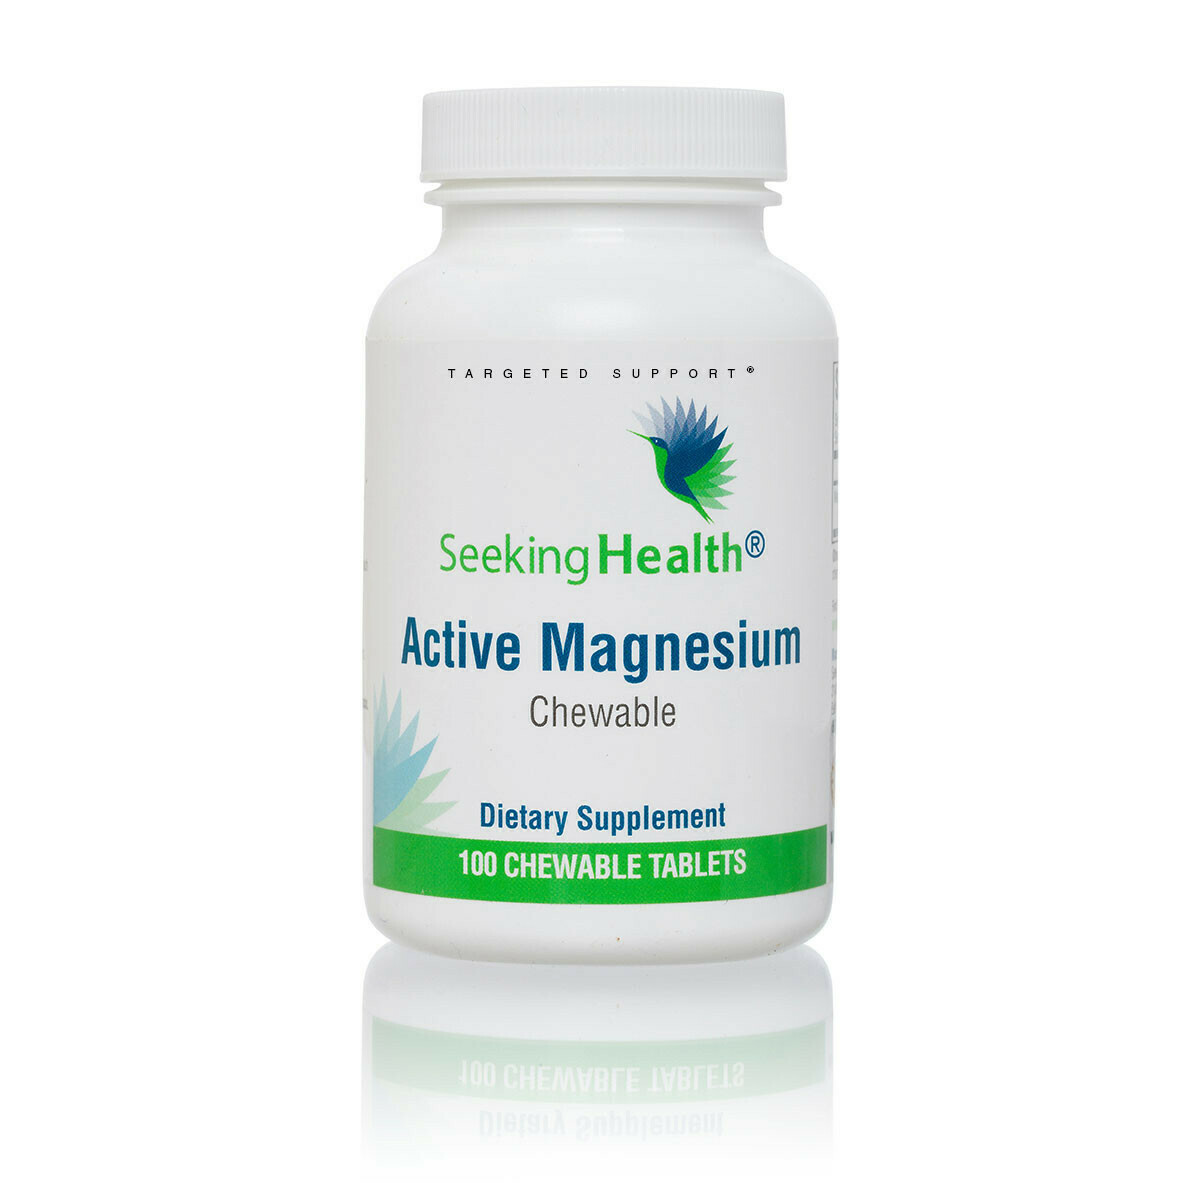 ACTIVE MAGNESIUM CHEWABLE - 100 TABLETS